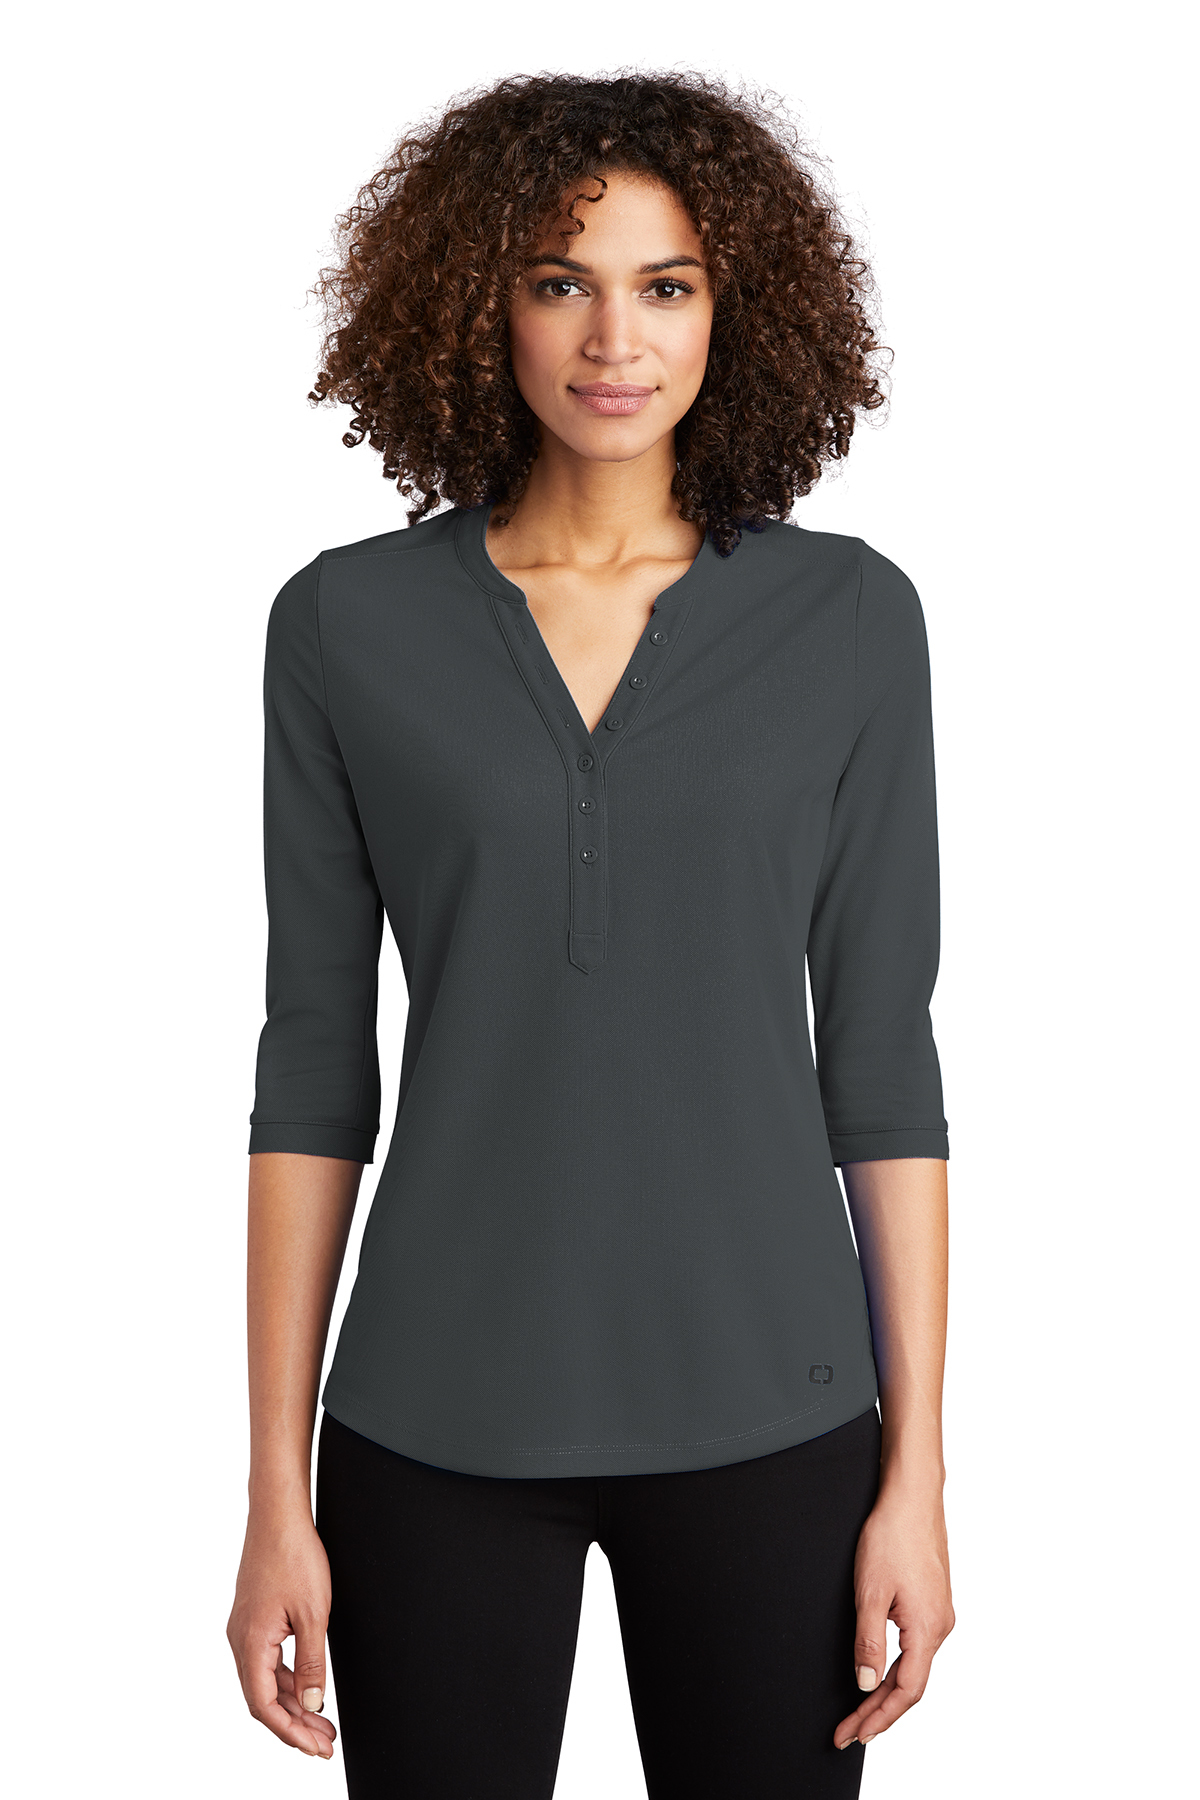 OGIO LOG104 - Ladies Jewel Henley